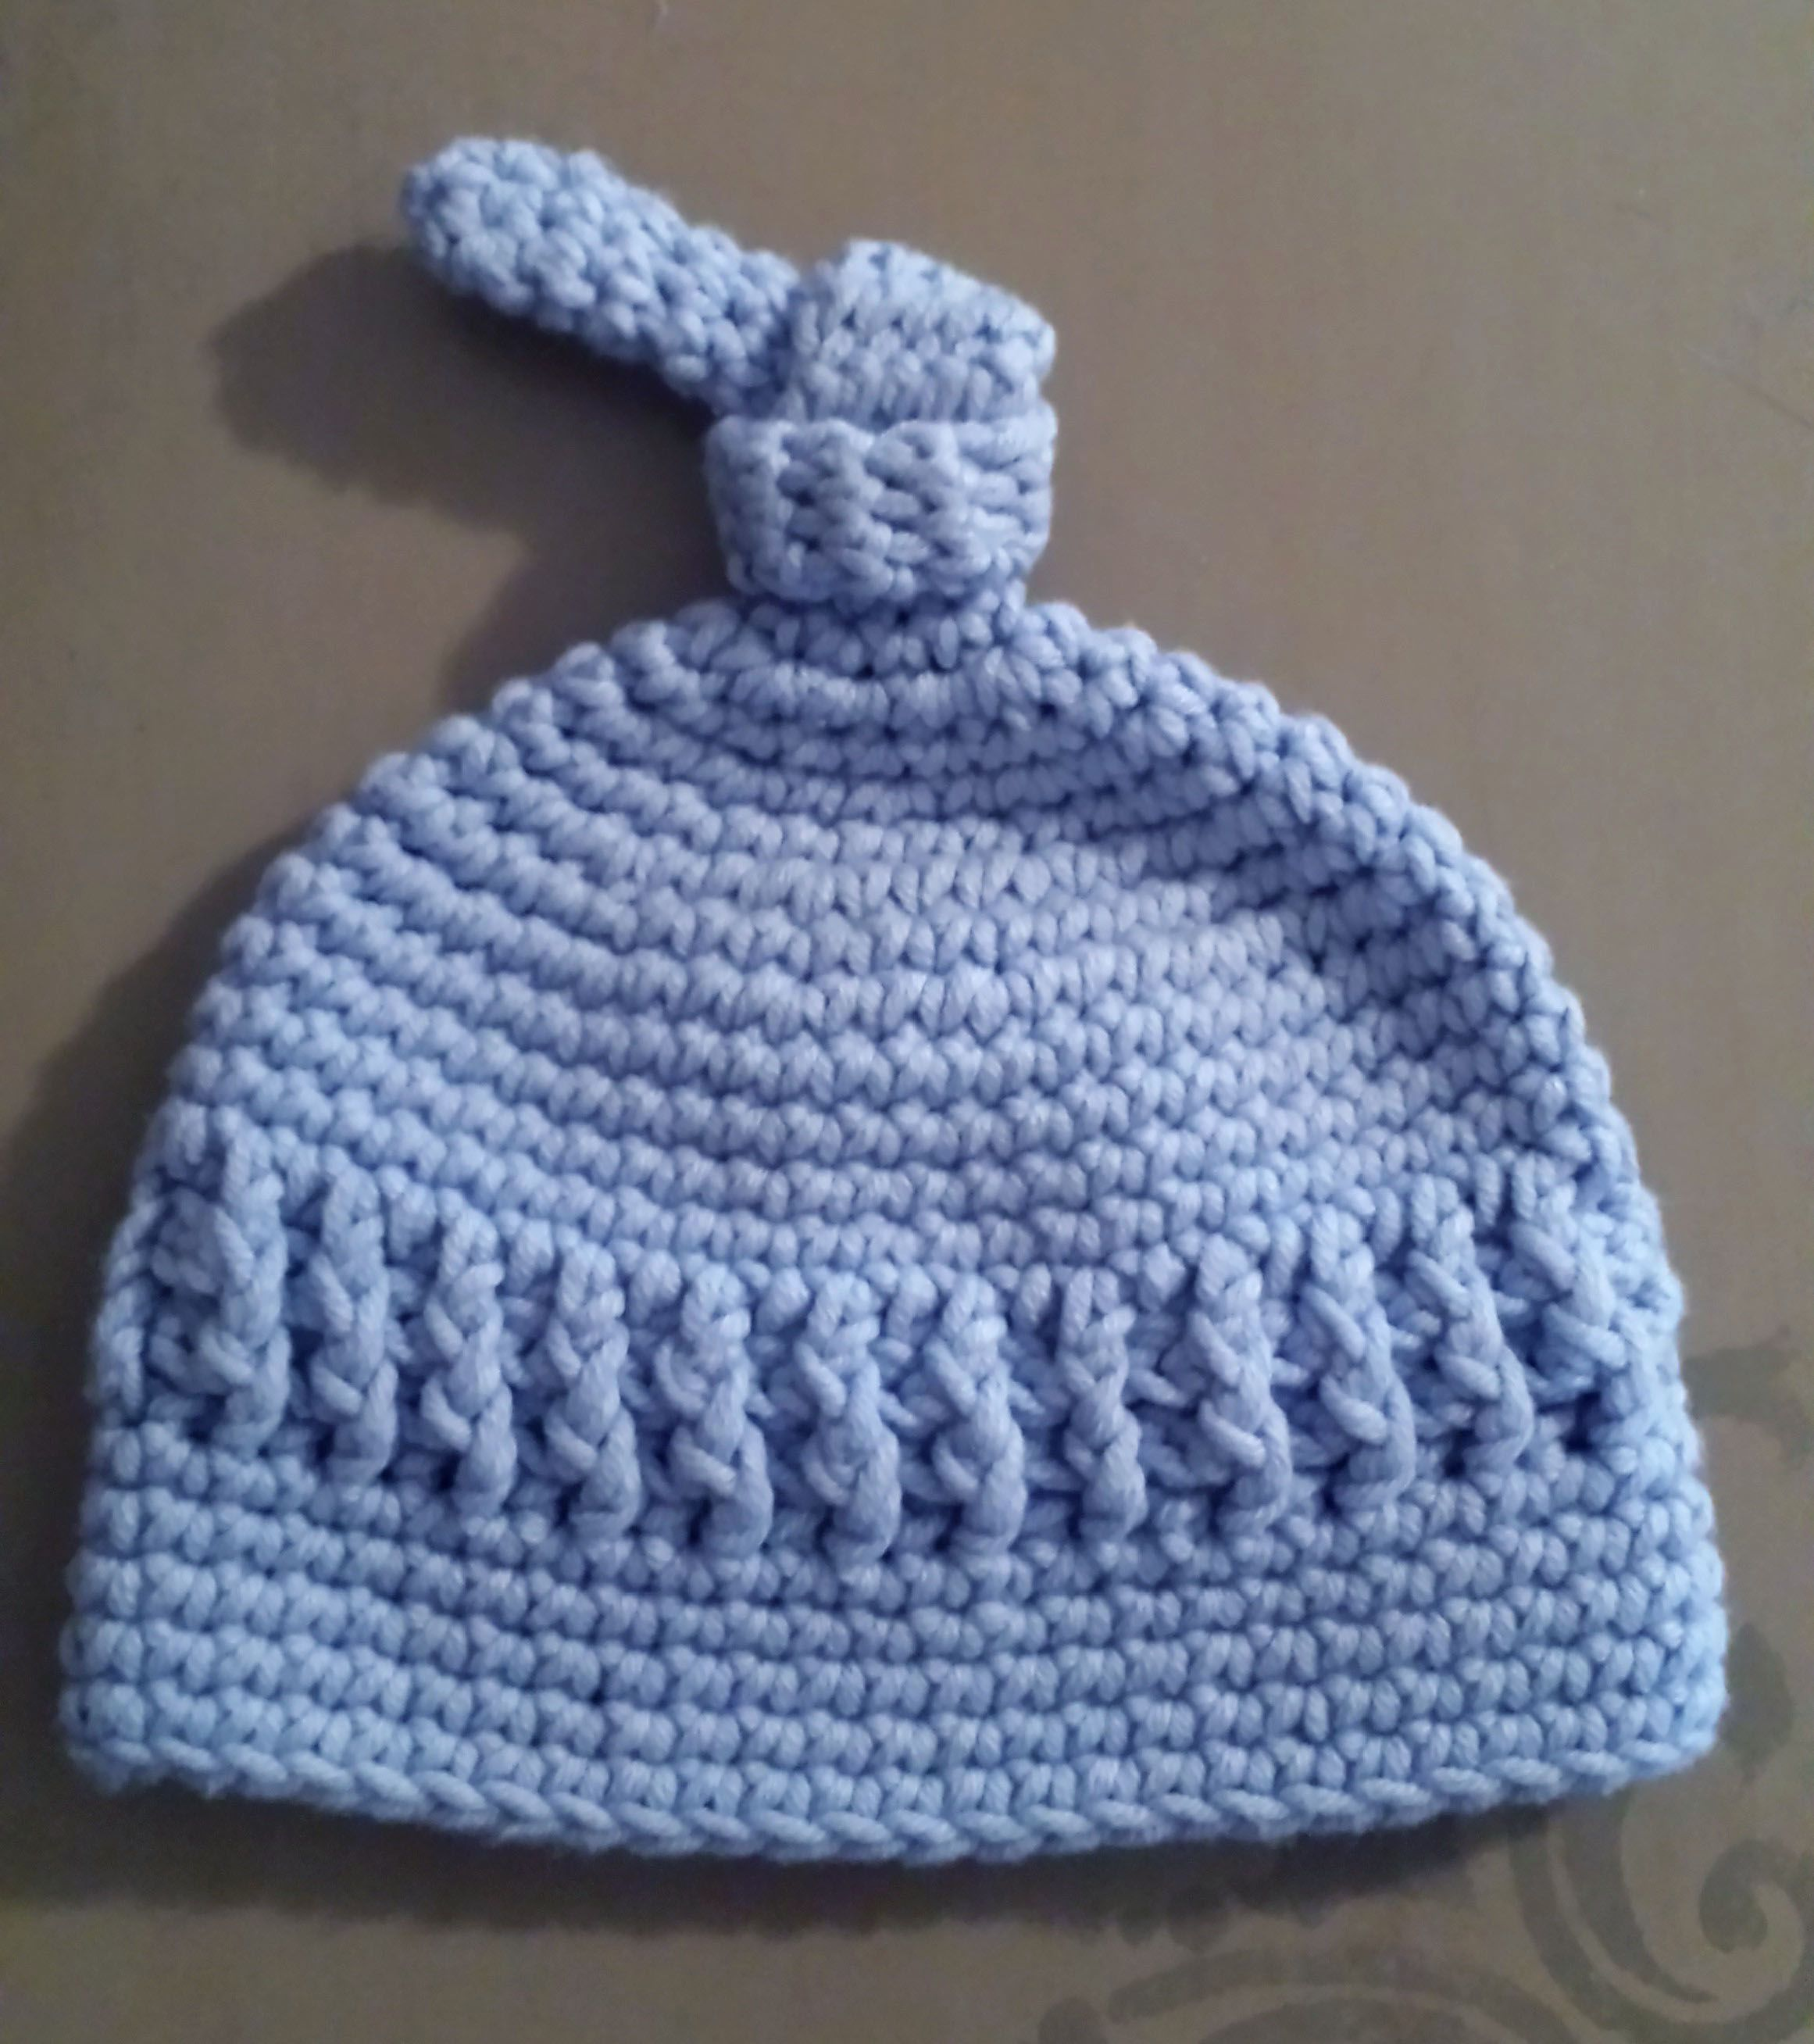 Crochet Baby Hat Pattern Double Crochet : 1000+ images about Crochet Babies Hats and Misc. on ...